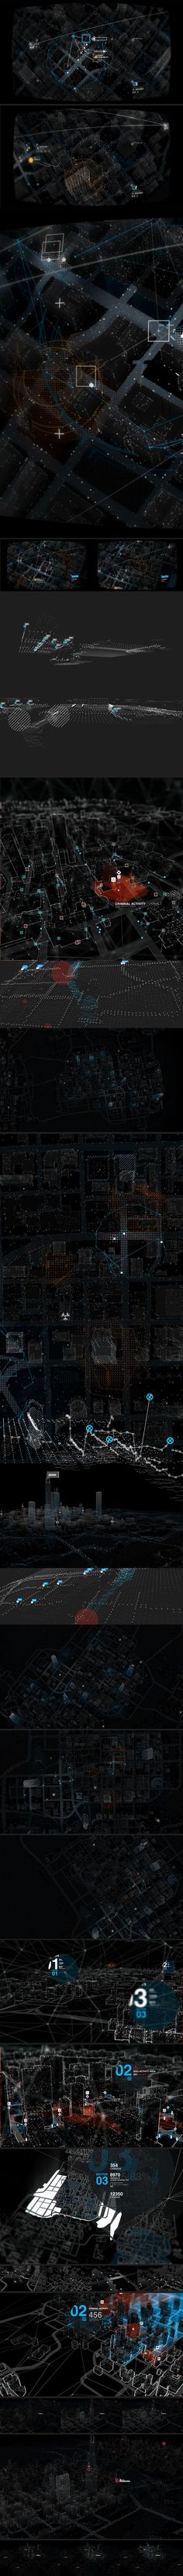 WATCH_DOGS : The Grid by Timothe Lapetite on Behance #Motion Graphics #User Interface #Design Concept